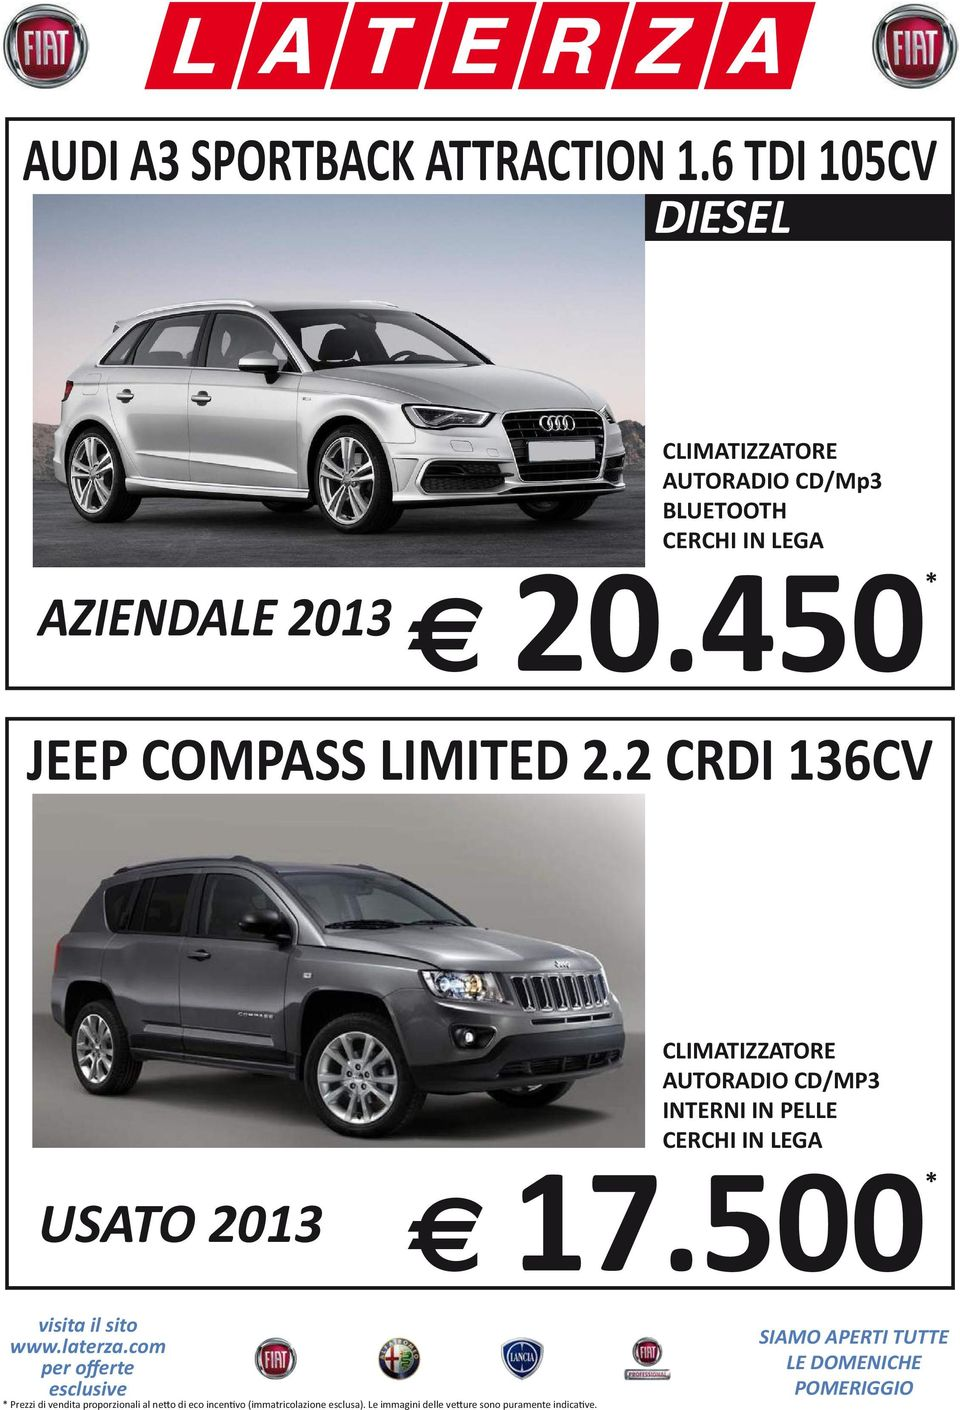 450* JEEP COMPASS LIMITED 2.